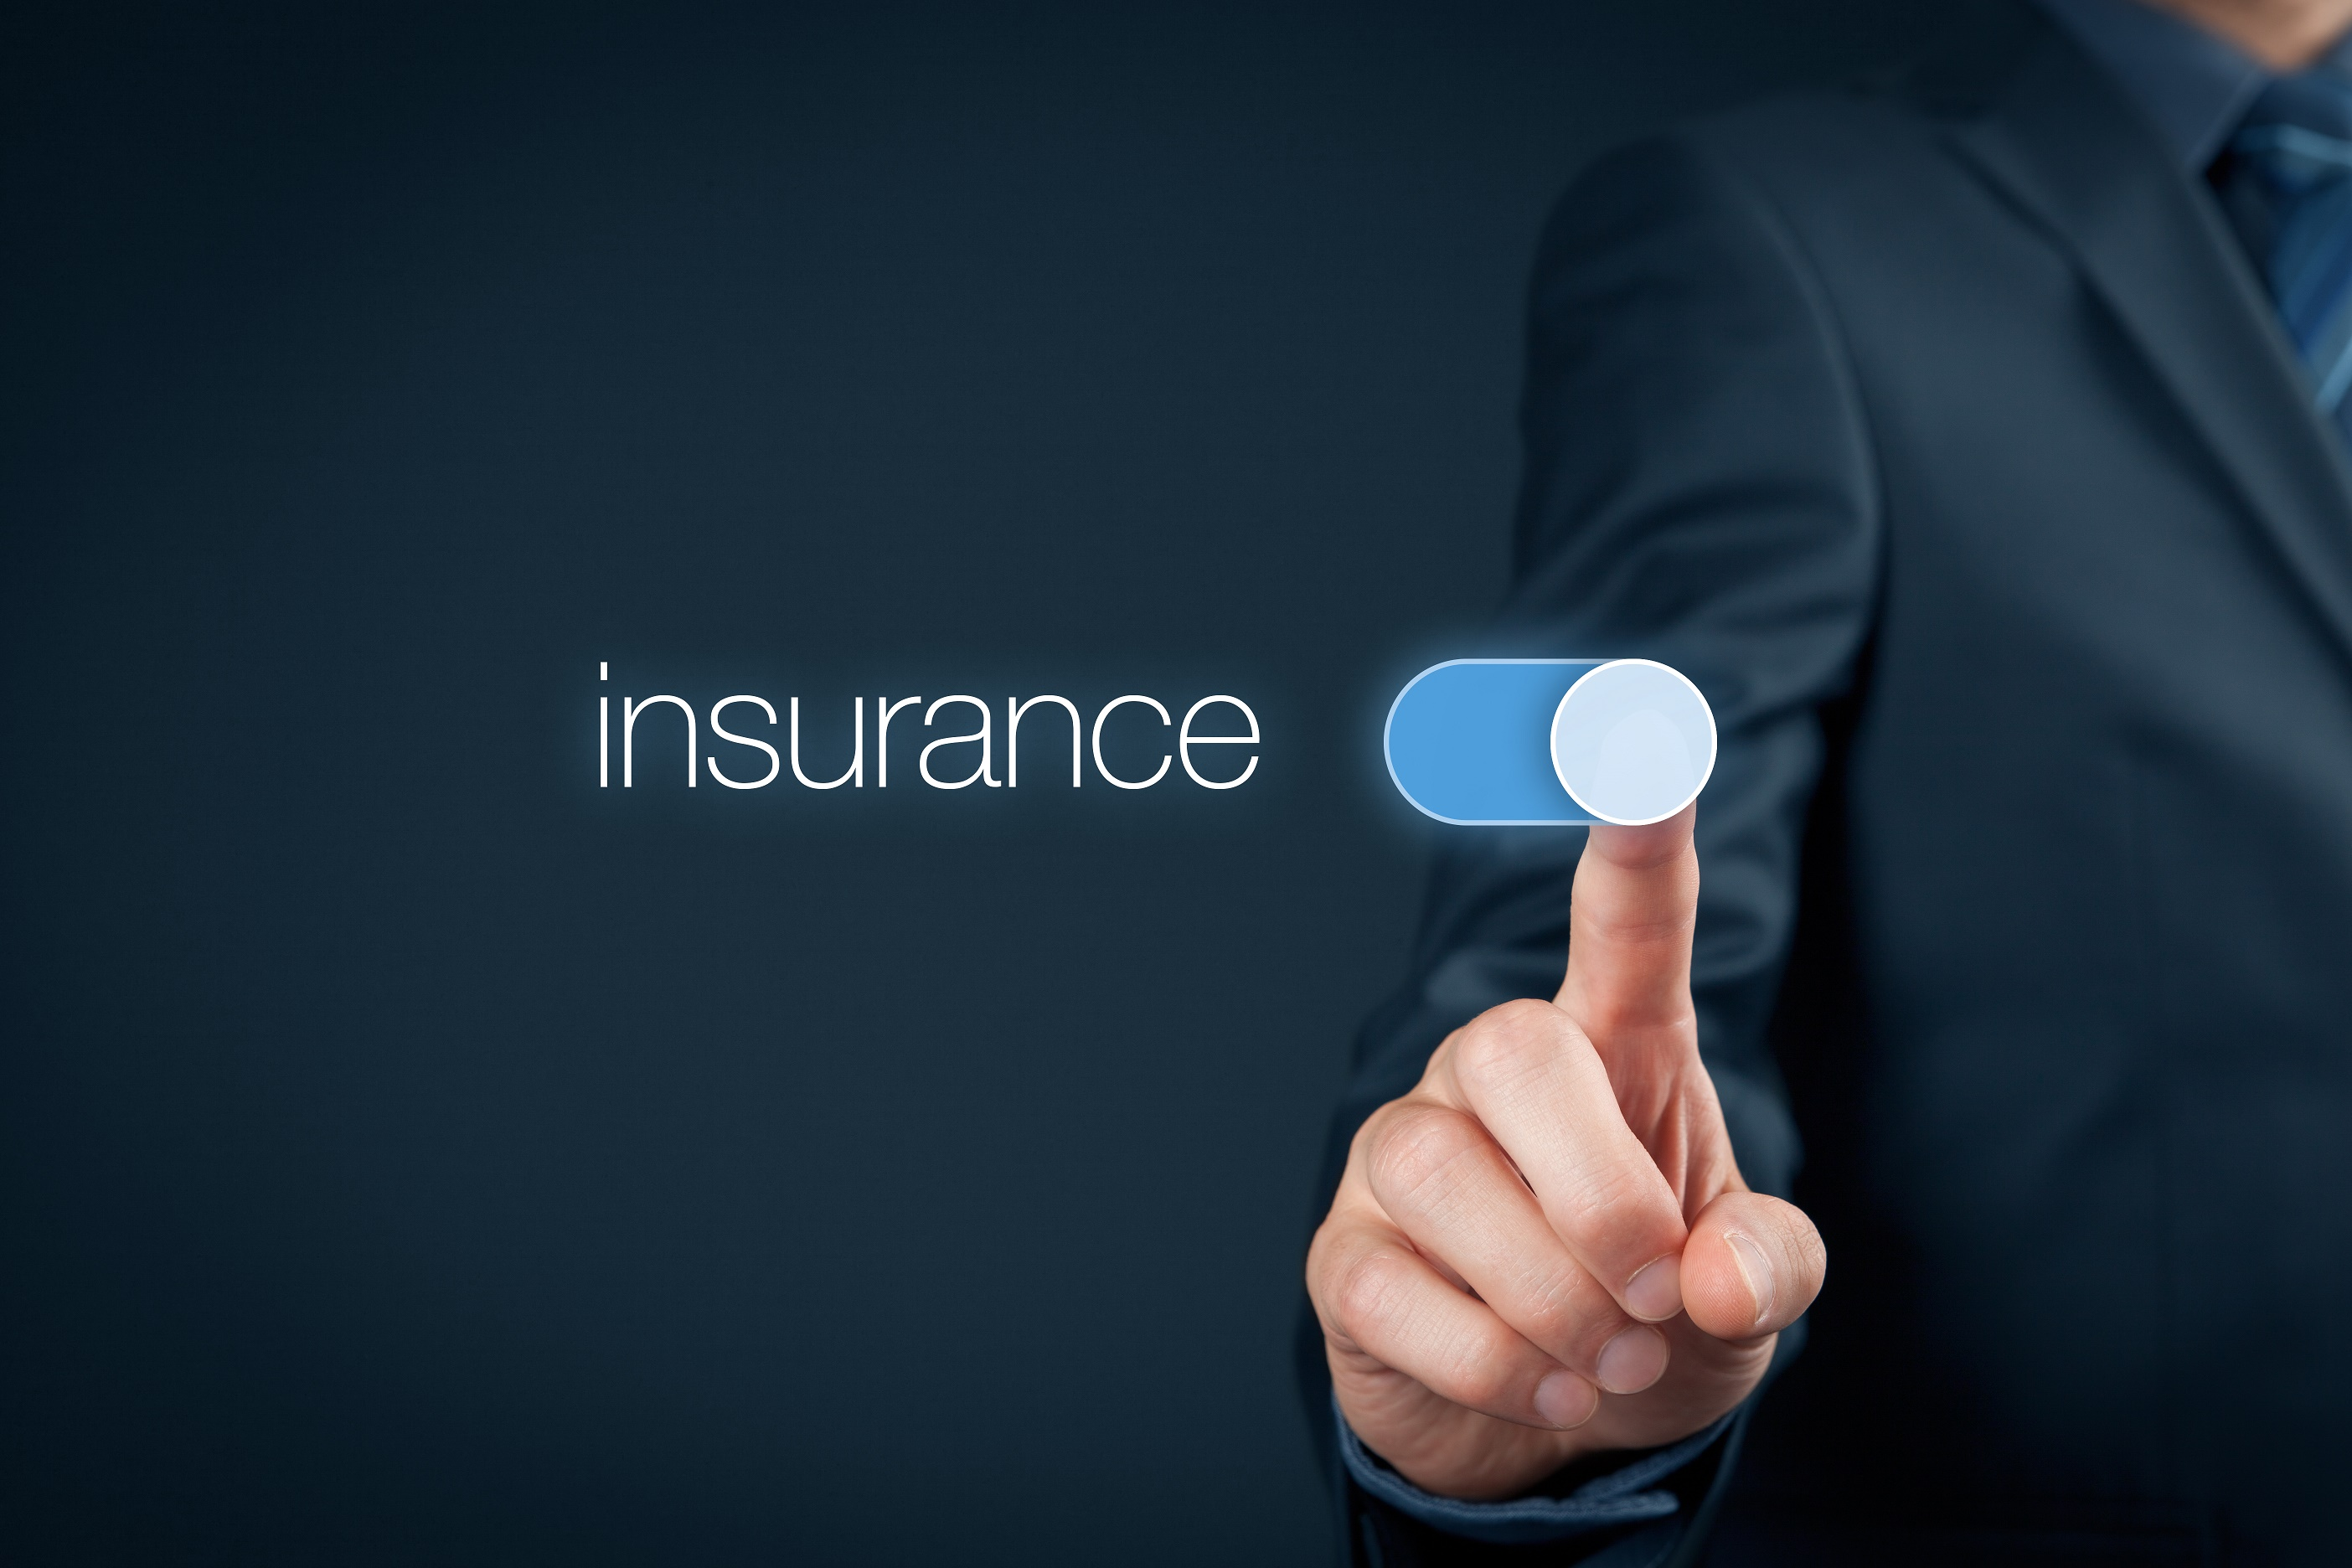 Contractor Insurance - Is Your Home Improvement Contractor Properly Insured?